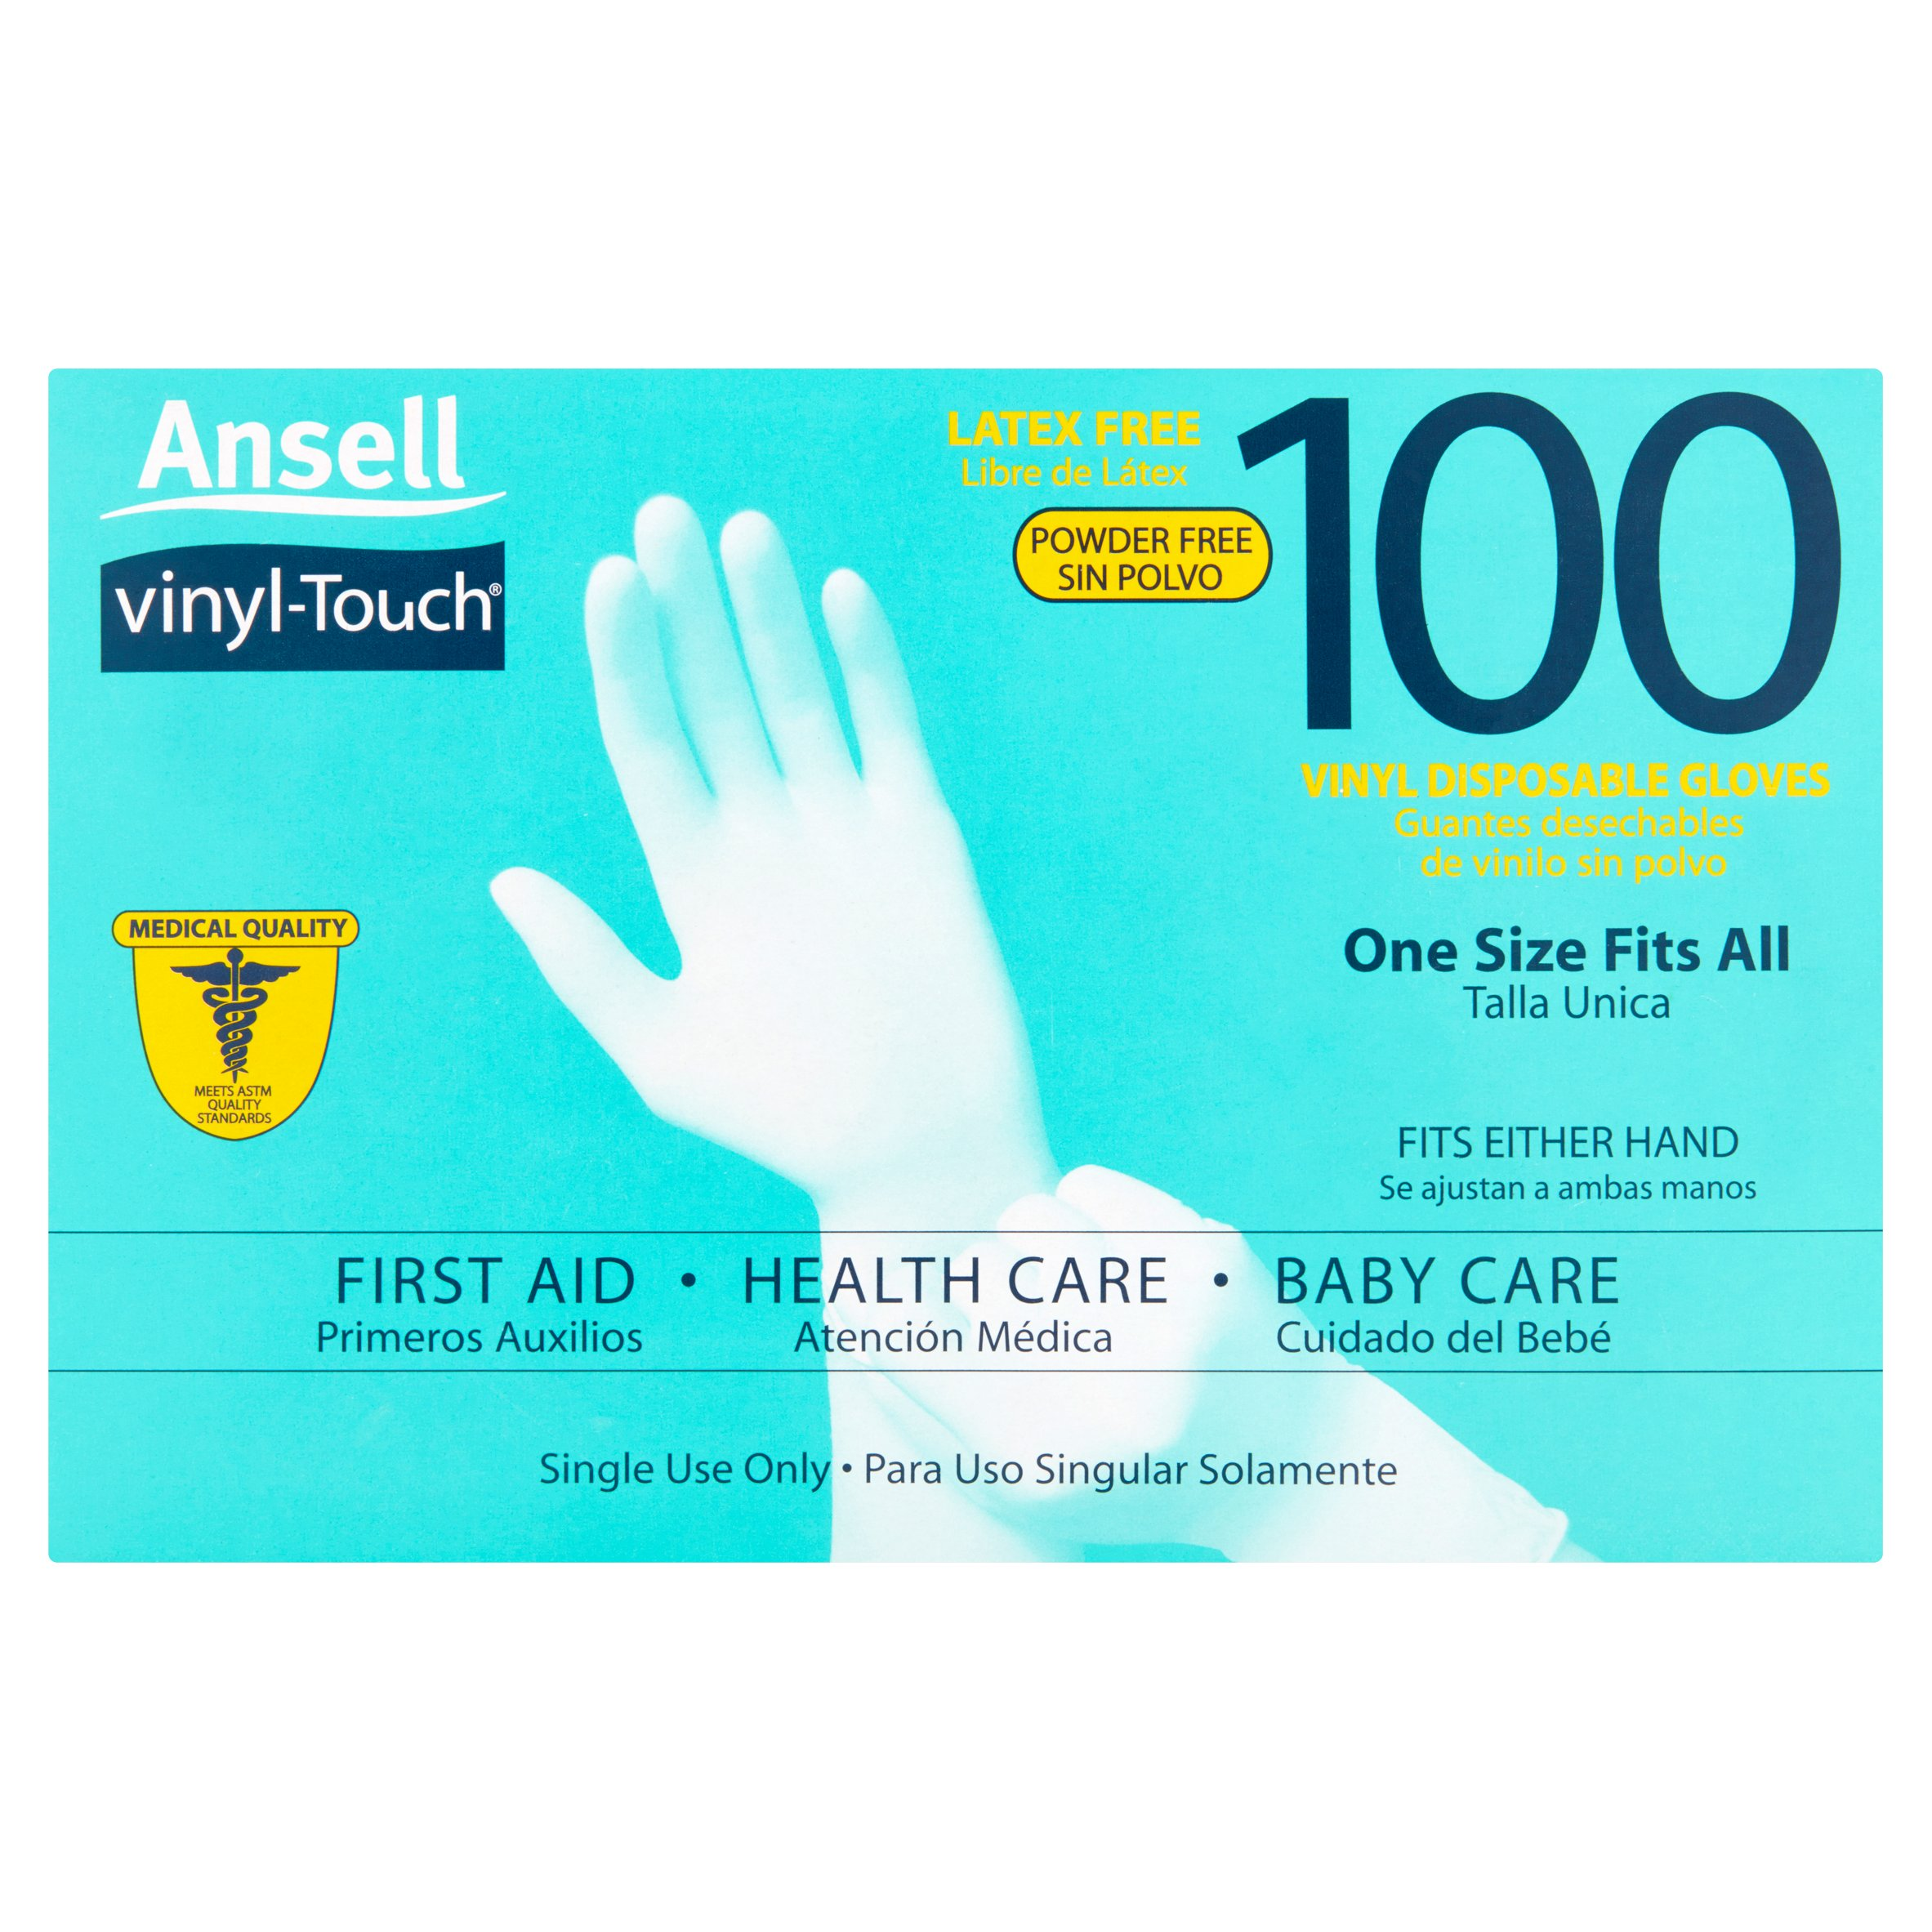 Ansell Vinyl Touch Gloves – Multi-Purpose, Disposable, Latex-Free, One Size Fits All! 100ct Gloves